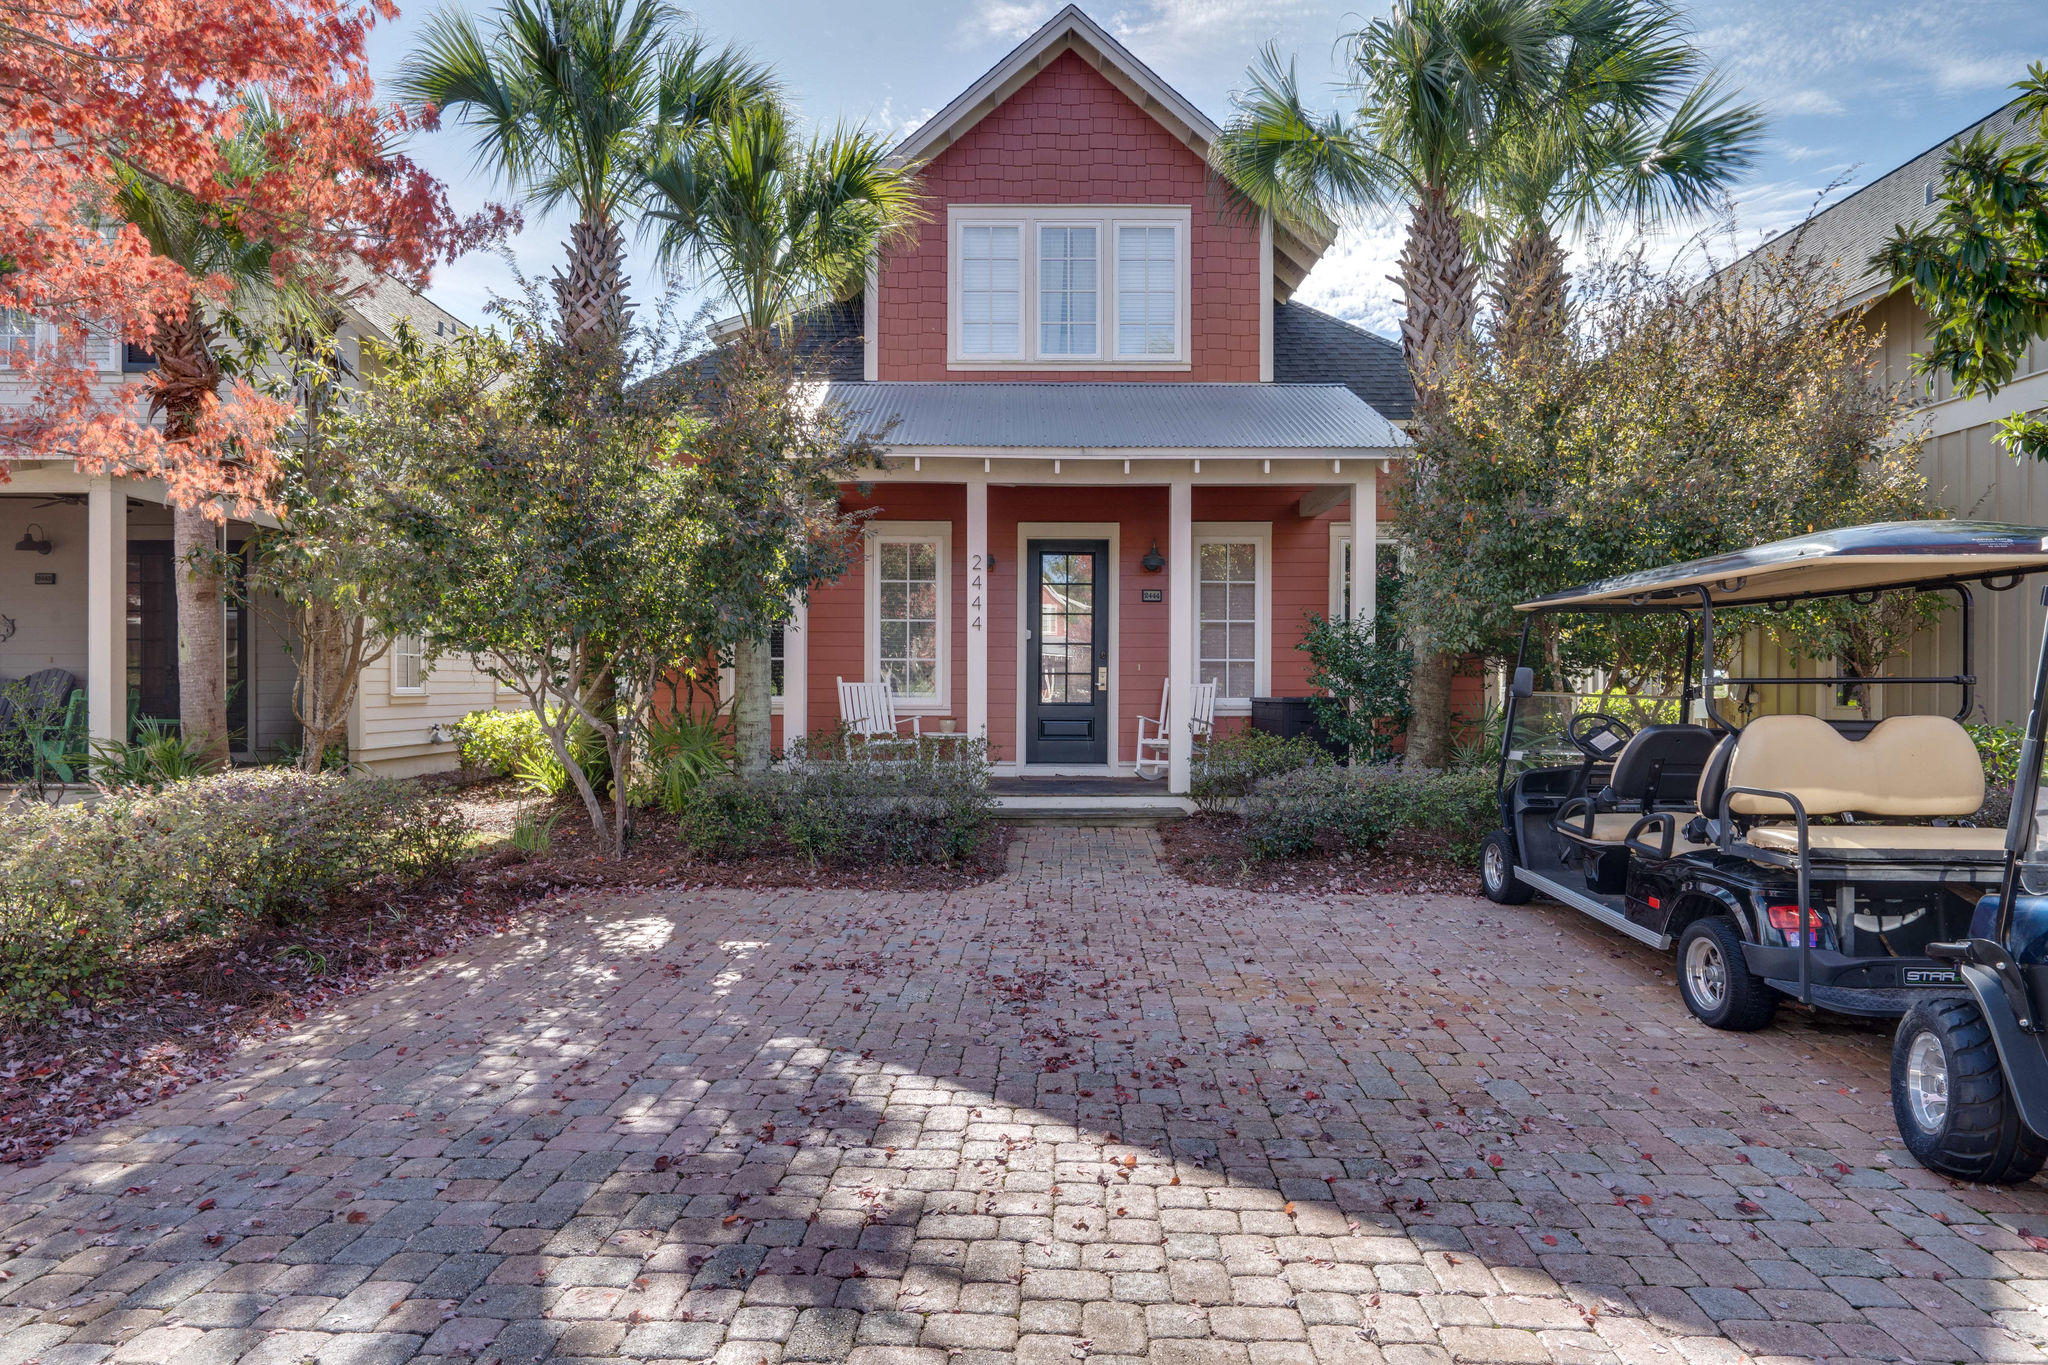 A 4 Bedroom 4 Bedroom Bungalos At Sandestin Home